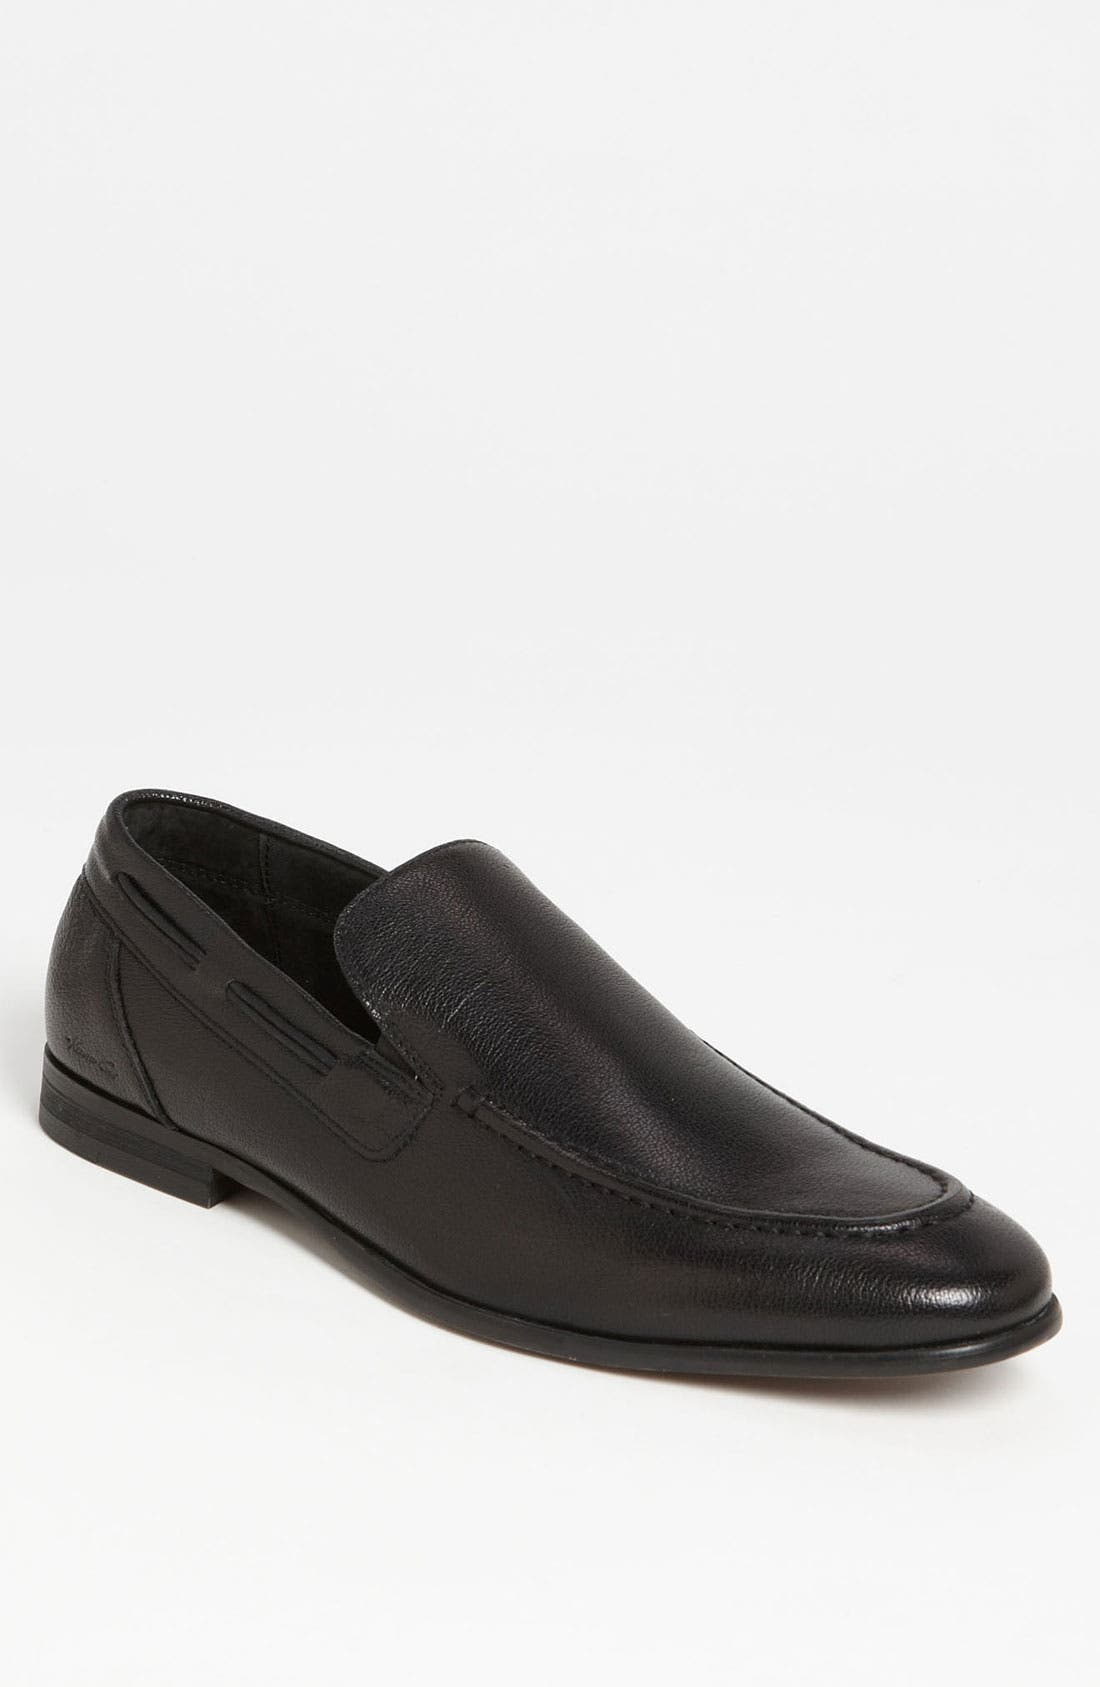 Main Image - Kenneth Cole New York 'Spring Ahead' Slip-On